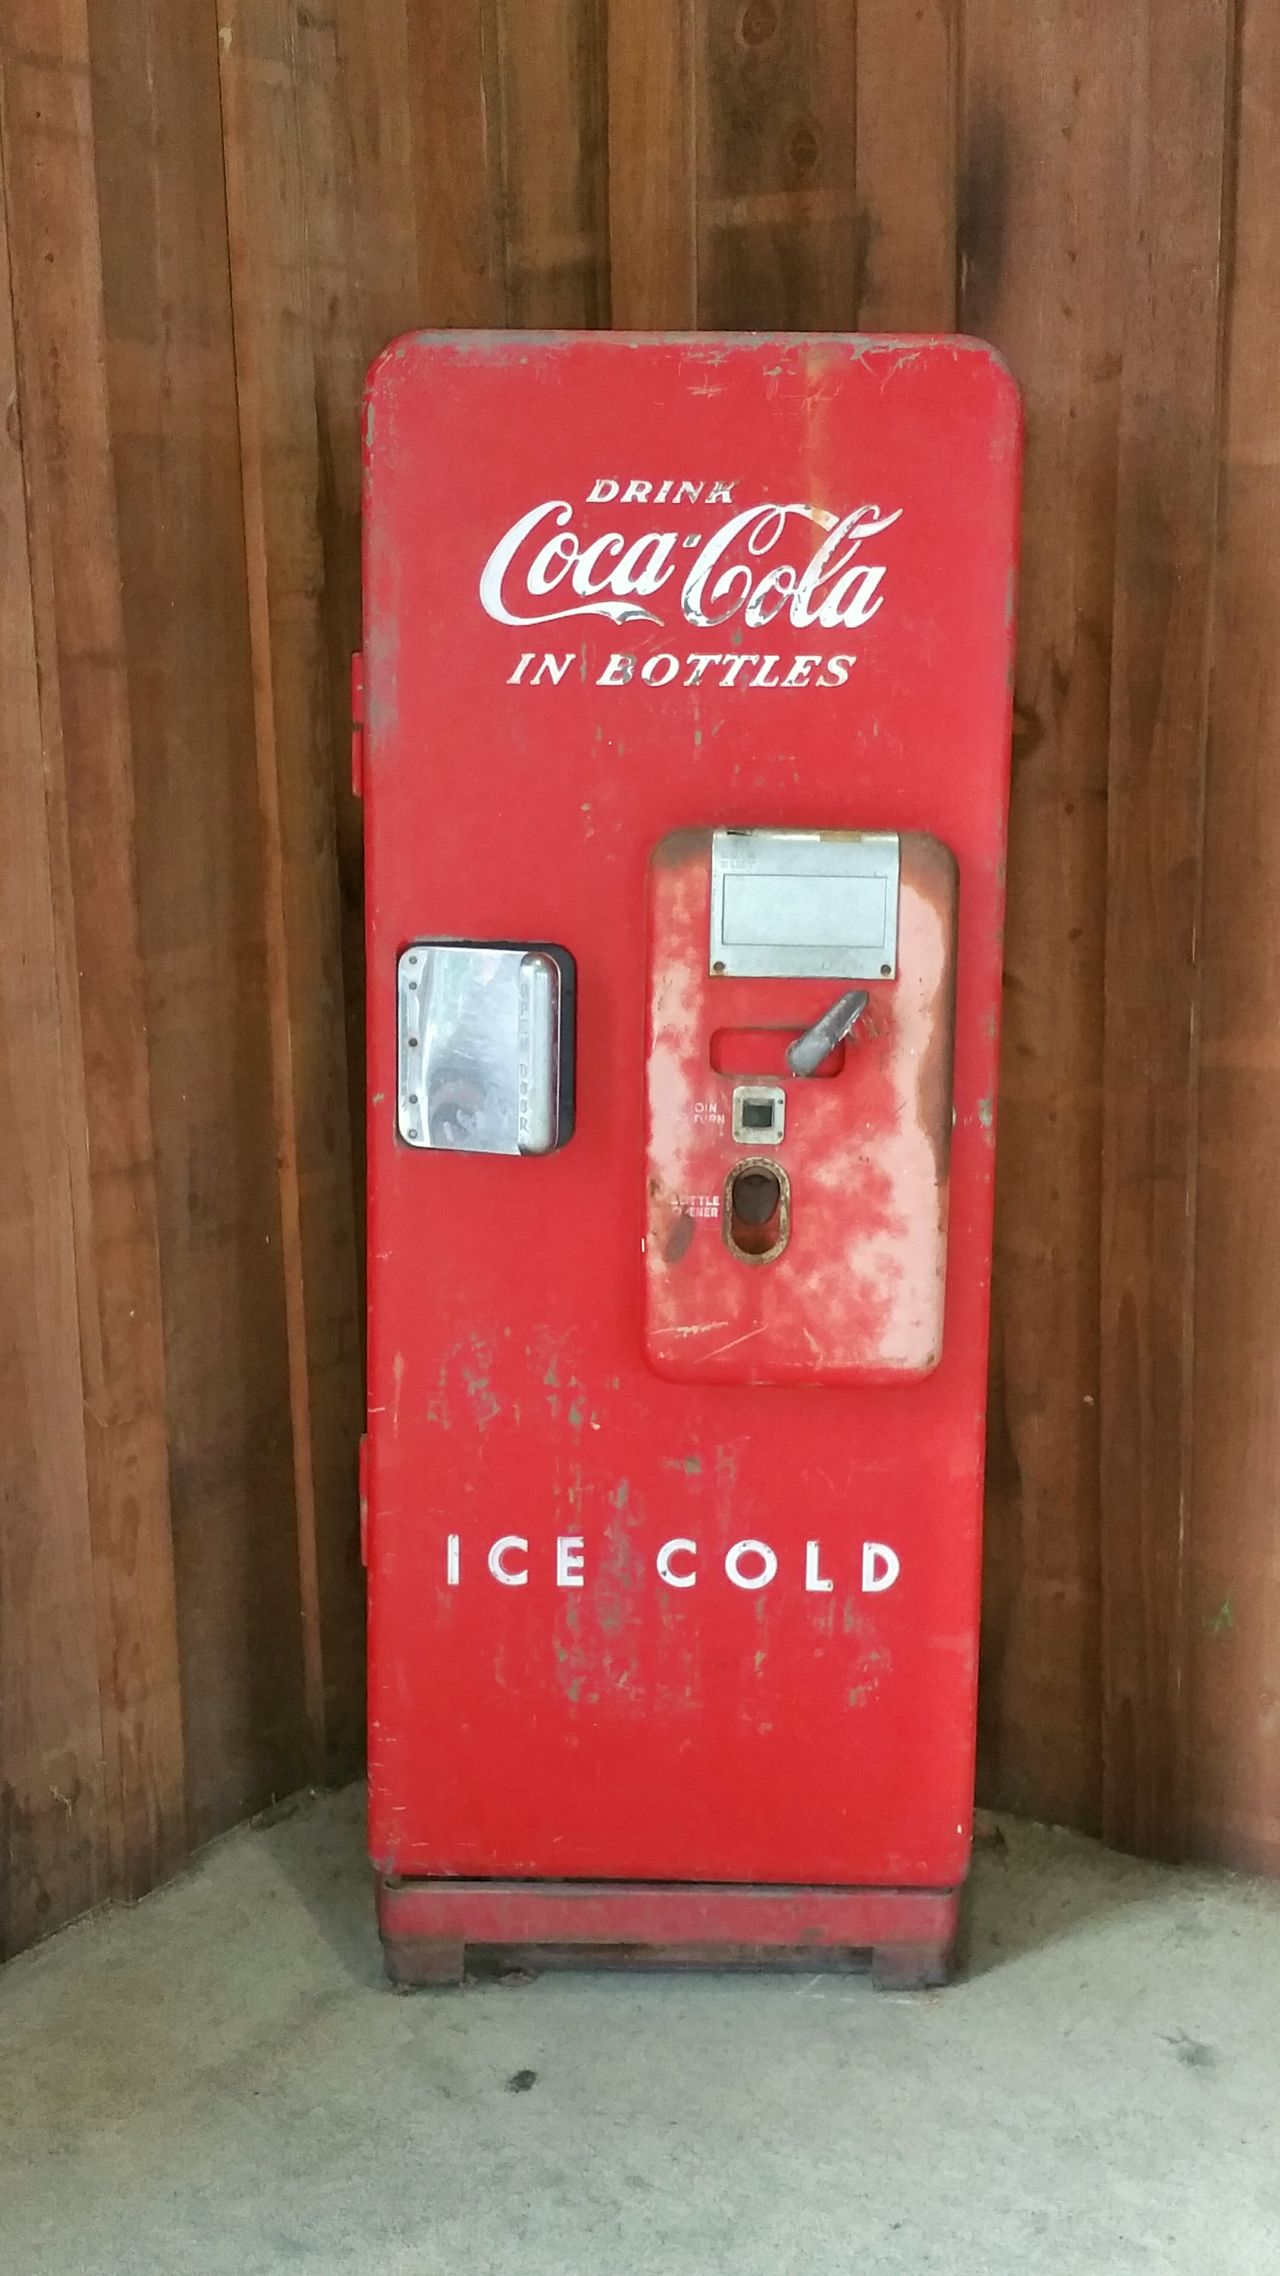 Antiques Old Drink Machine Times Gone By Times Past Red Drink Cooler Drink Machine Vintage Vintage Machine Vintage Drink Machine Old Coke Machine Vintage Coke Cooler Coca Cola Old Coca Cola Machine Cola Pop Machine Old Coke Drink Coca-cola